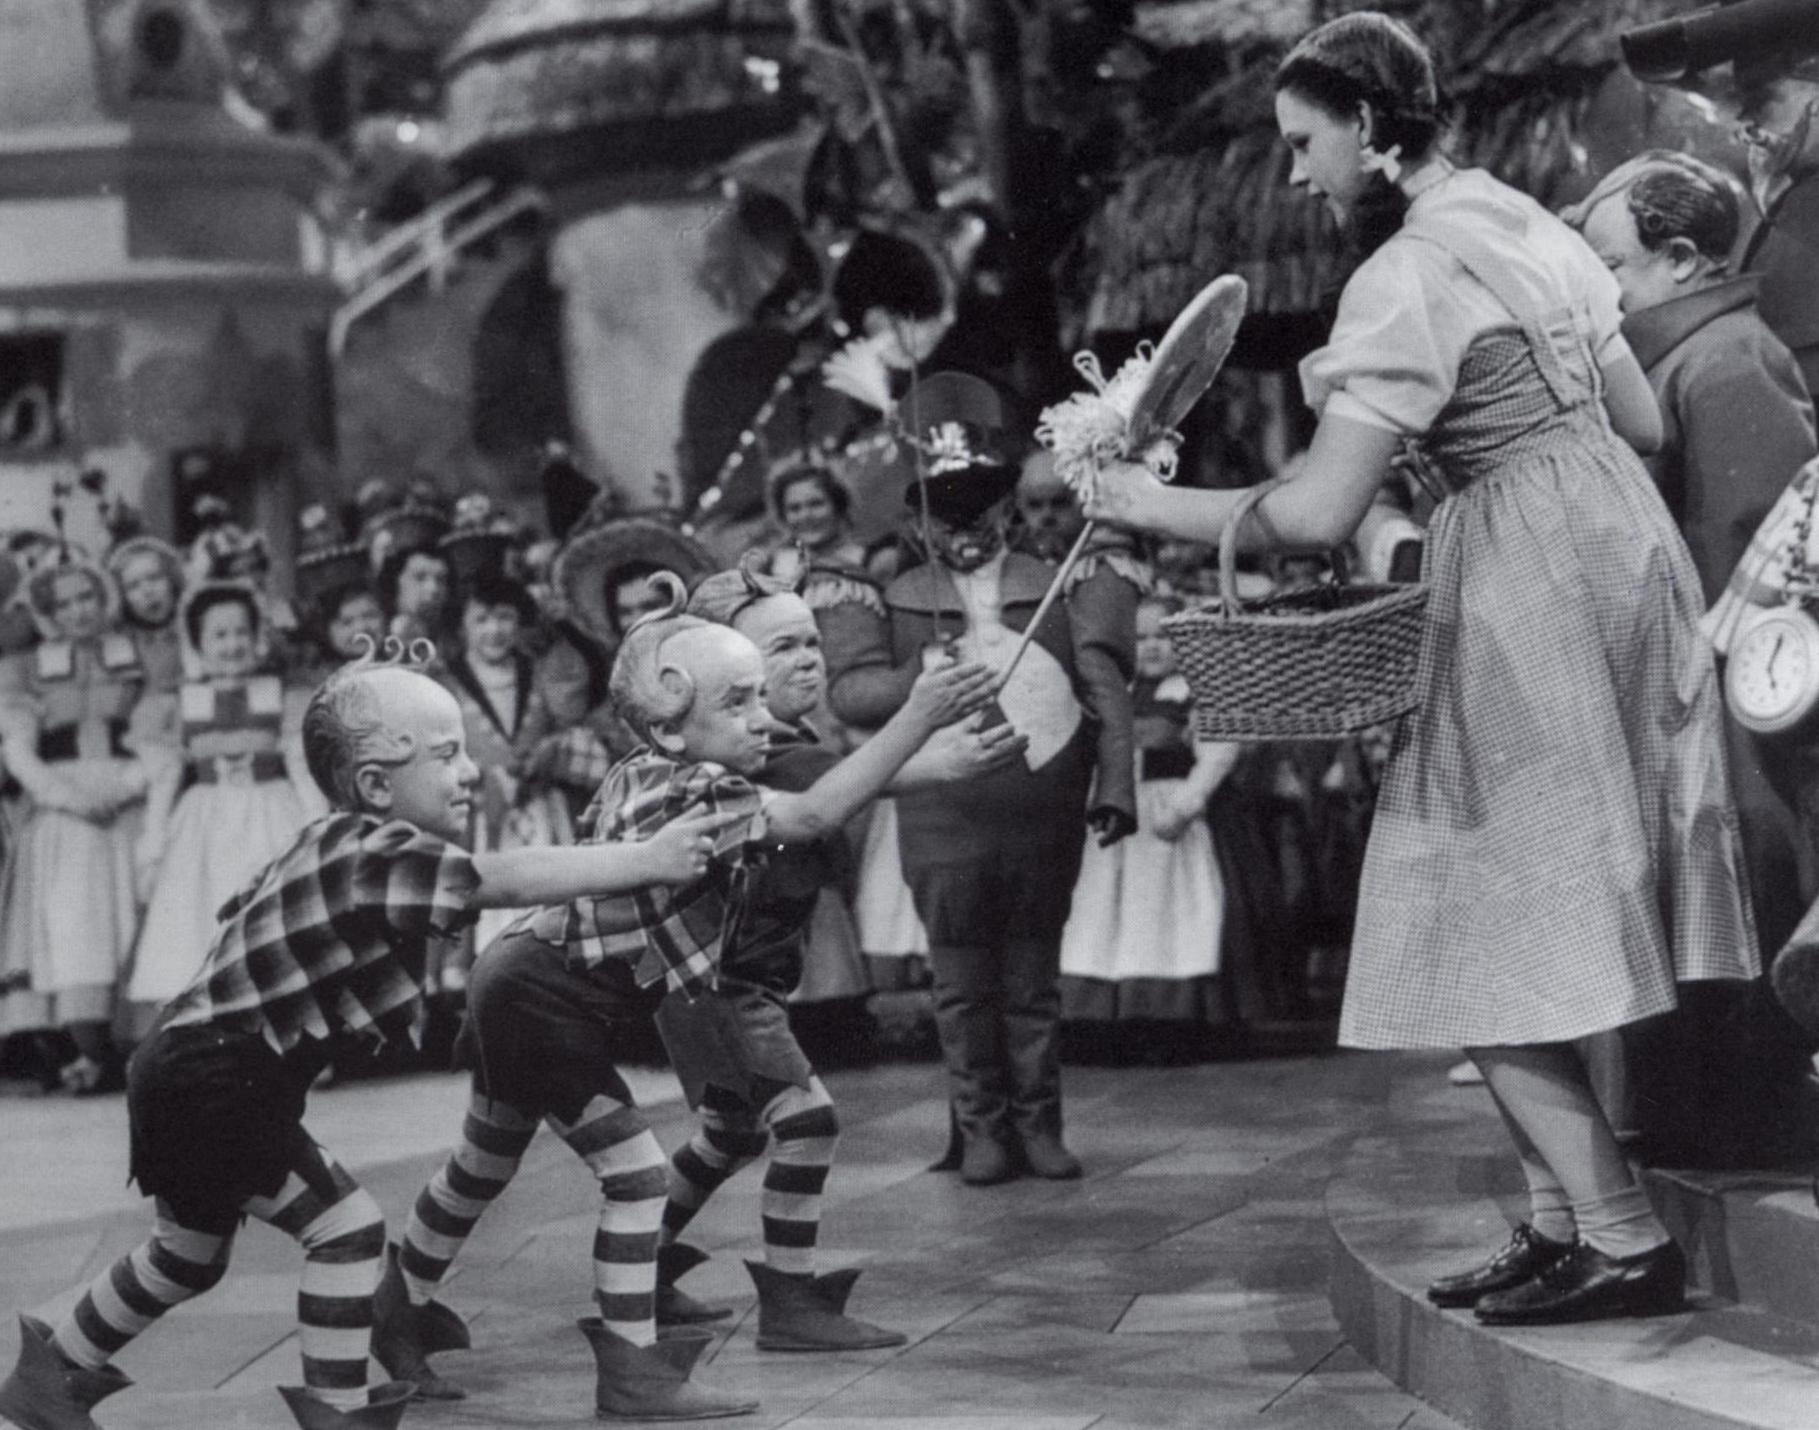 The last living <em>Wizard of Oz</em> munchkin has passed away at 98, but his iconic Lollipop Guild performance will stay with us